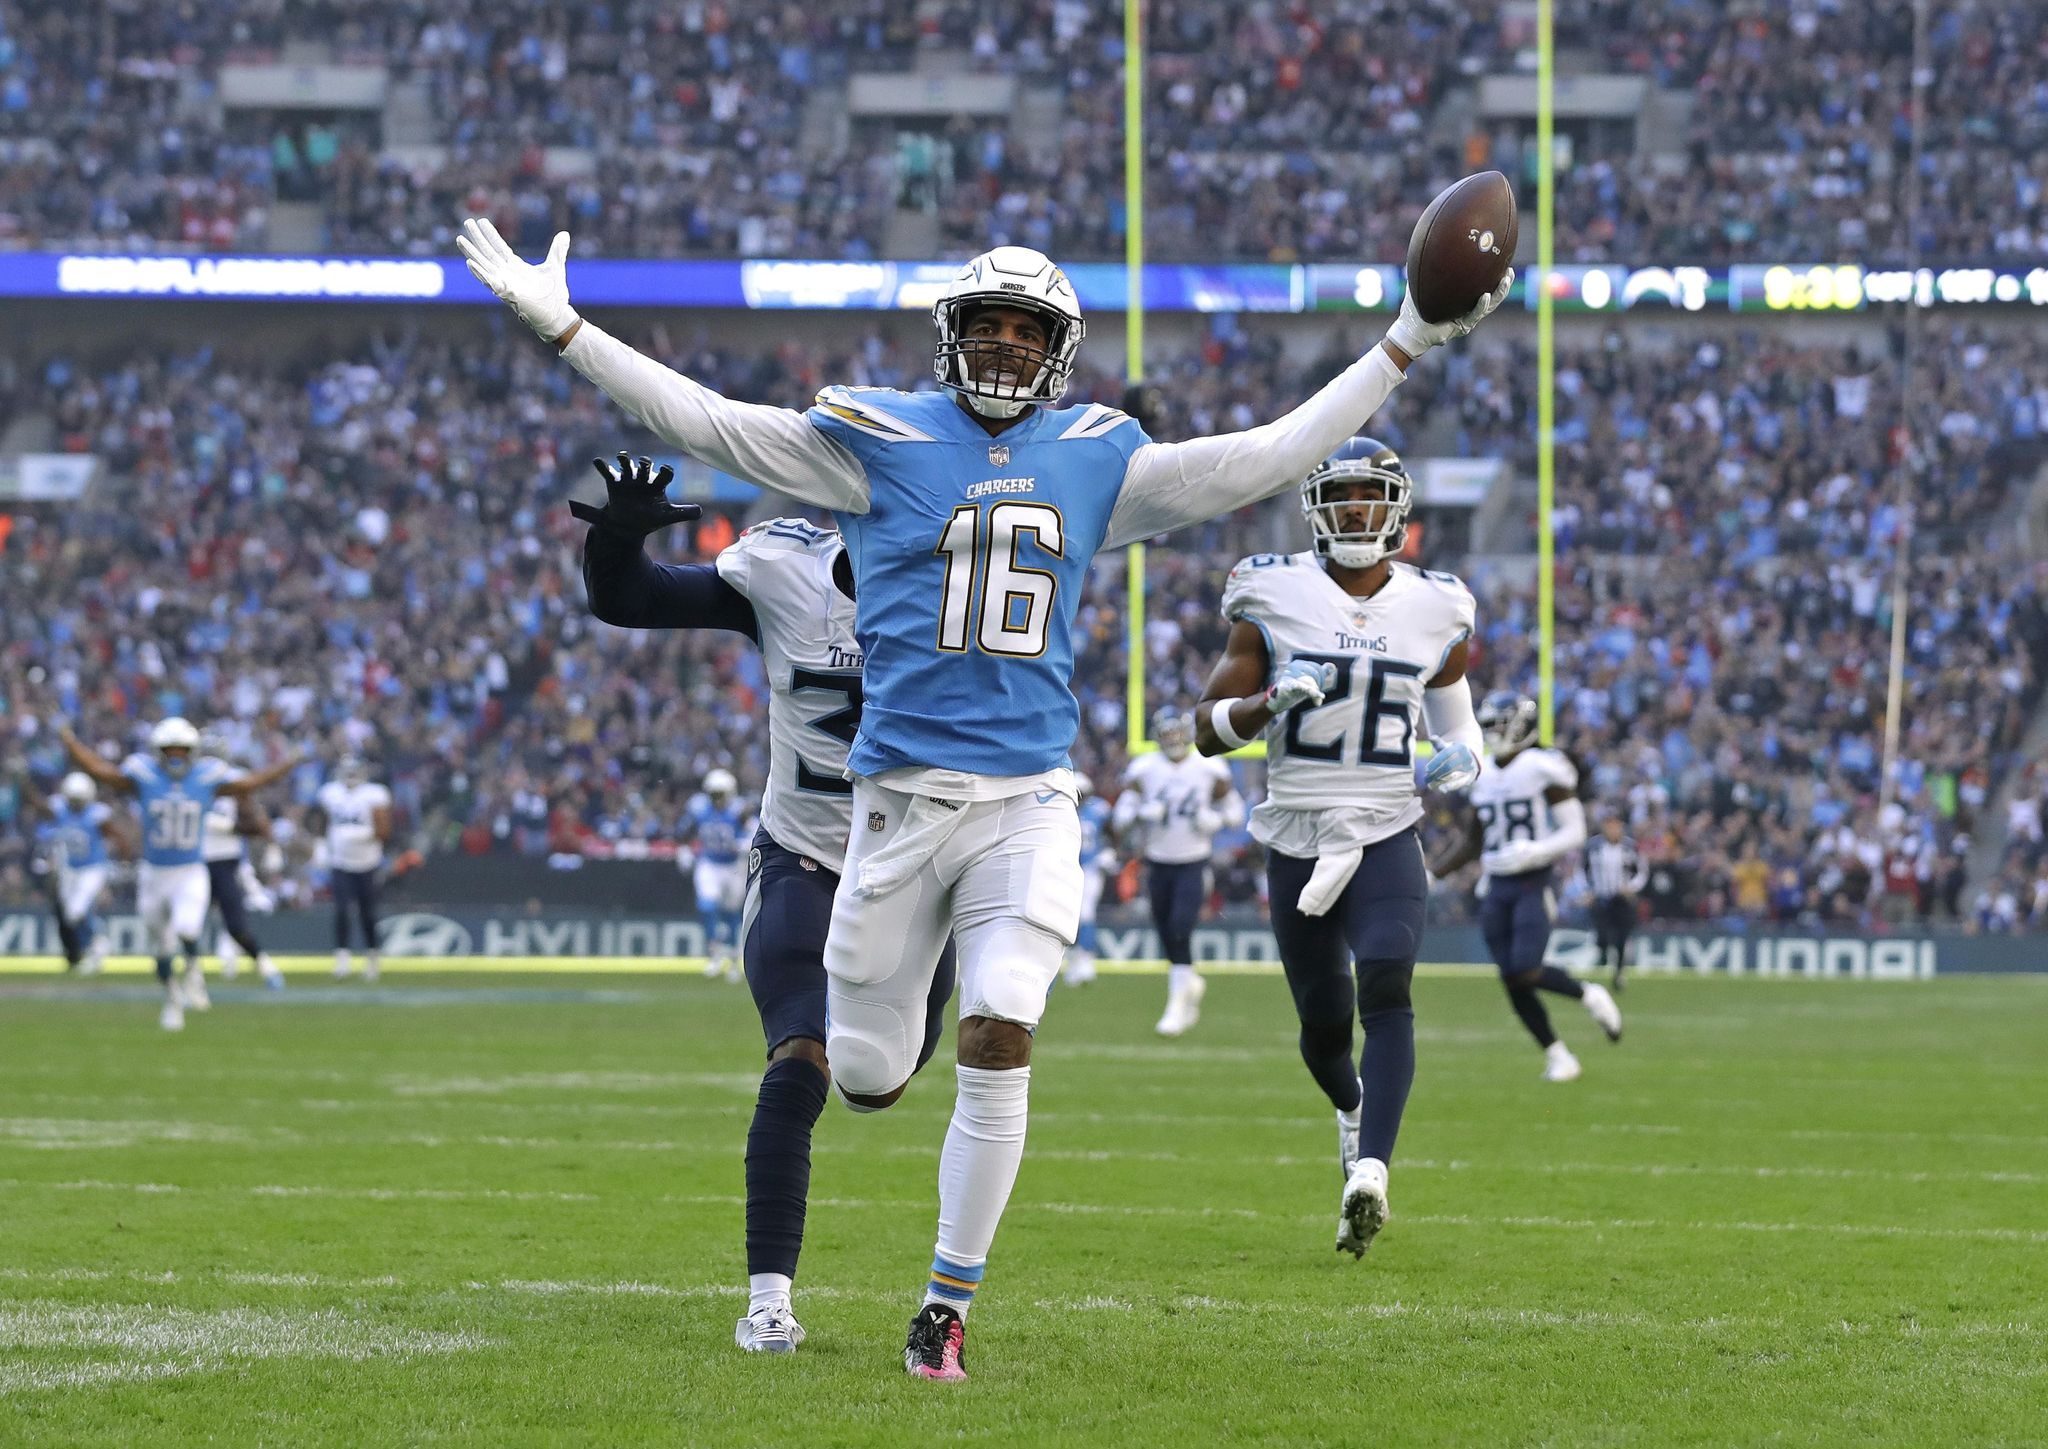 Titans_chargers_football_94264_s2048x1449